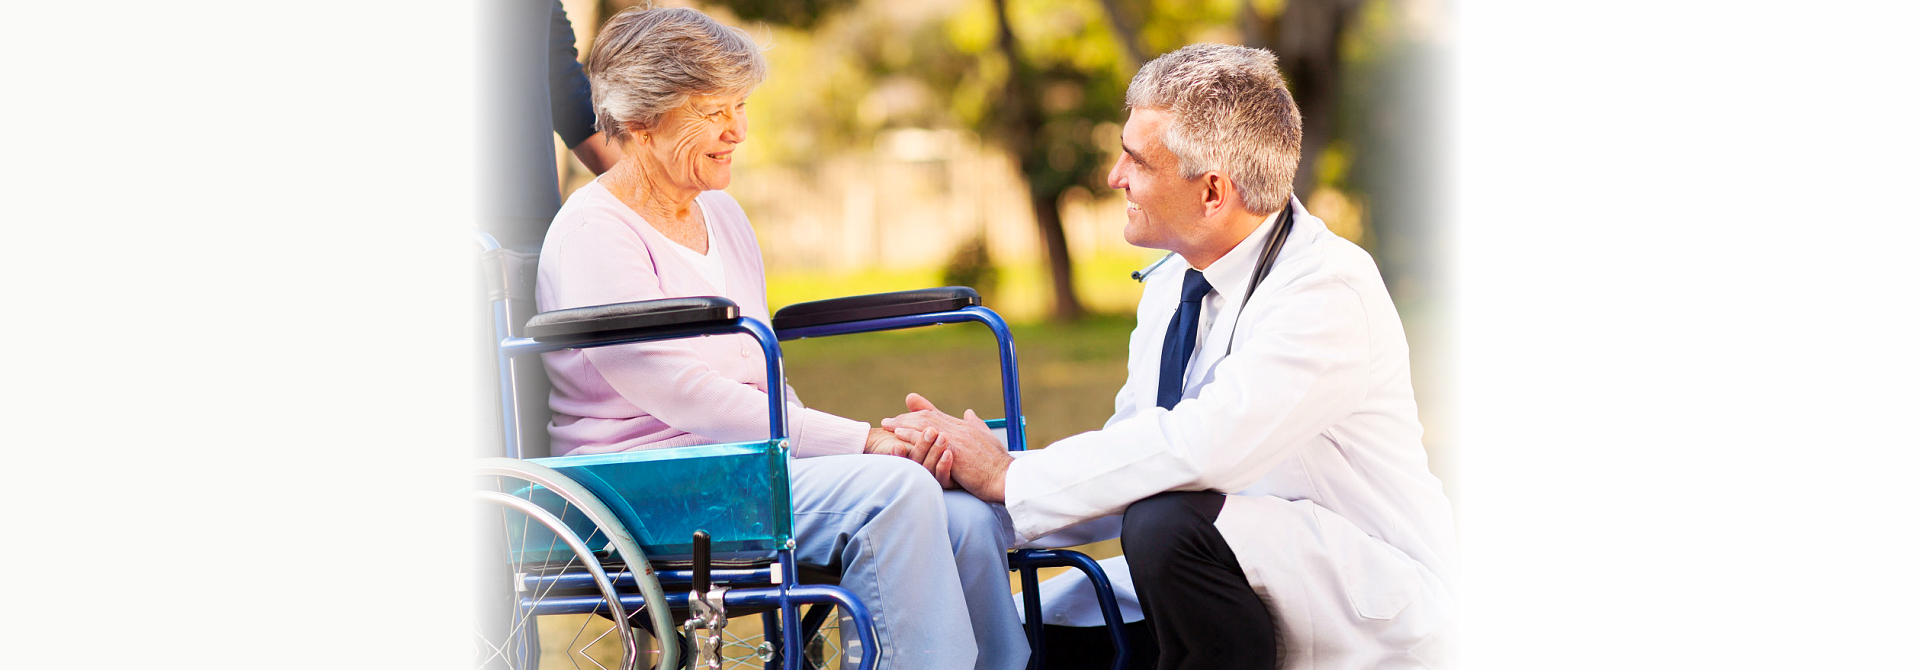 doctor comforting old woman